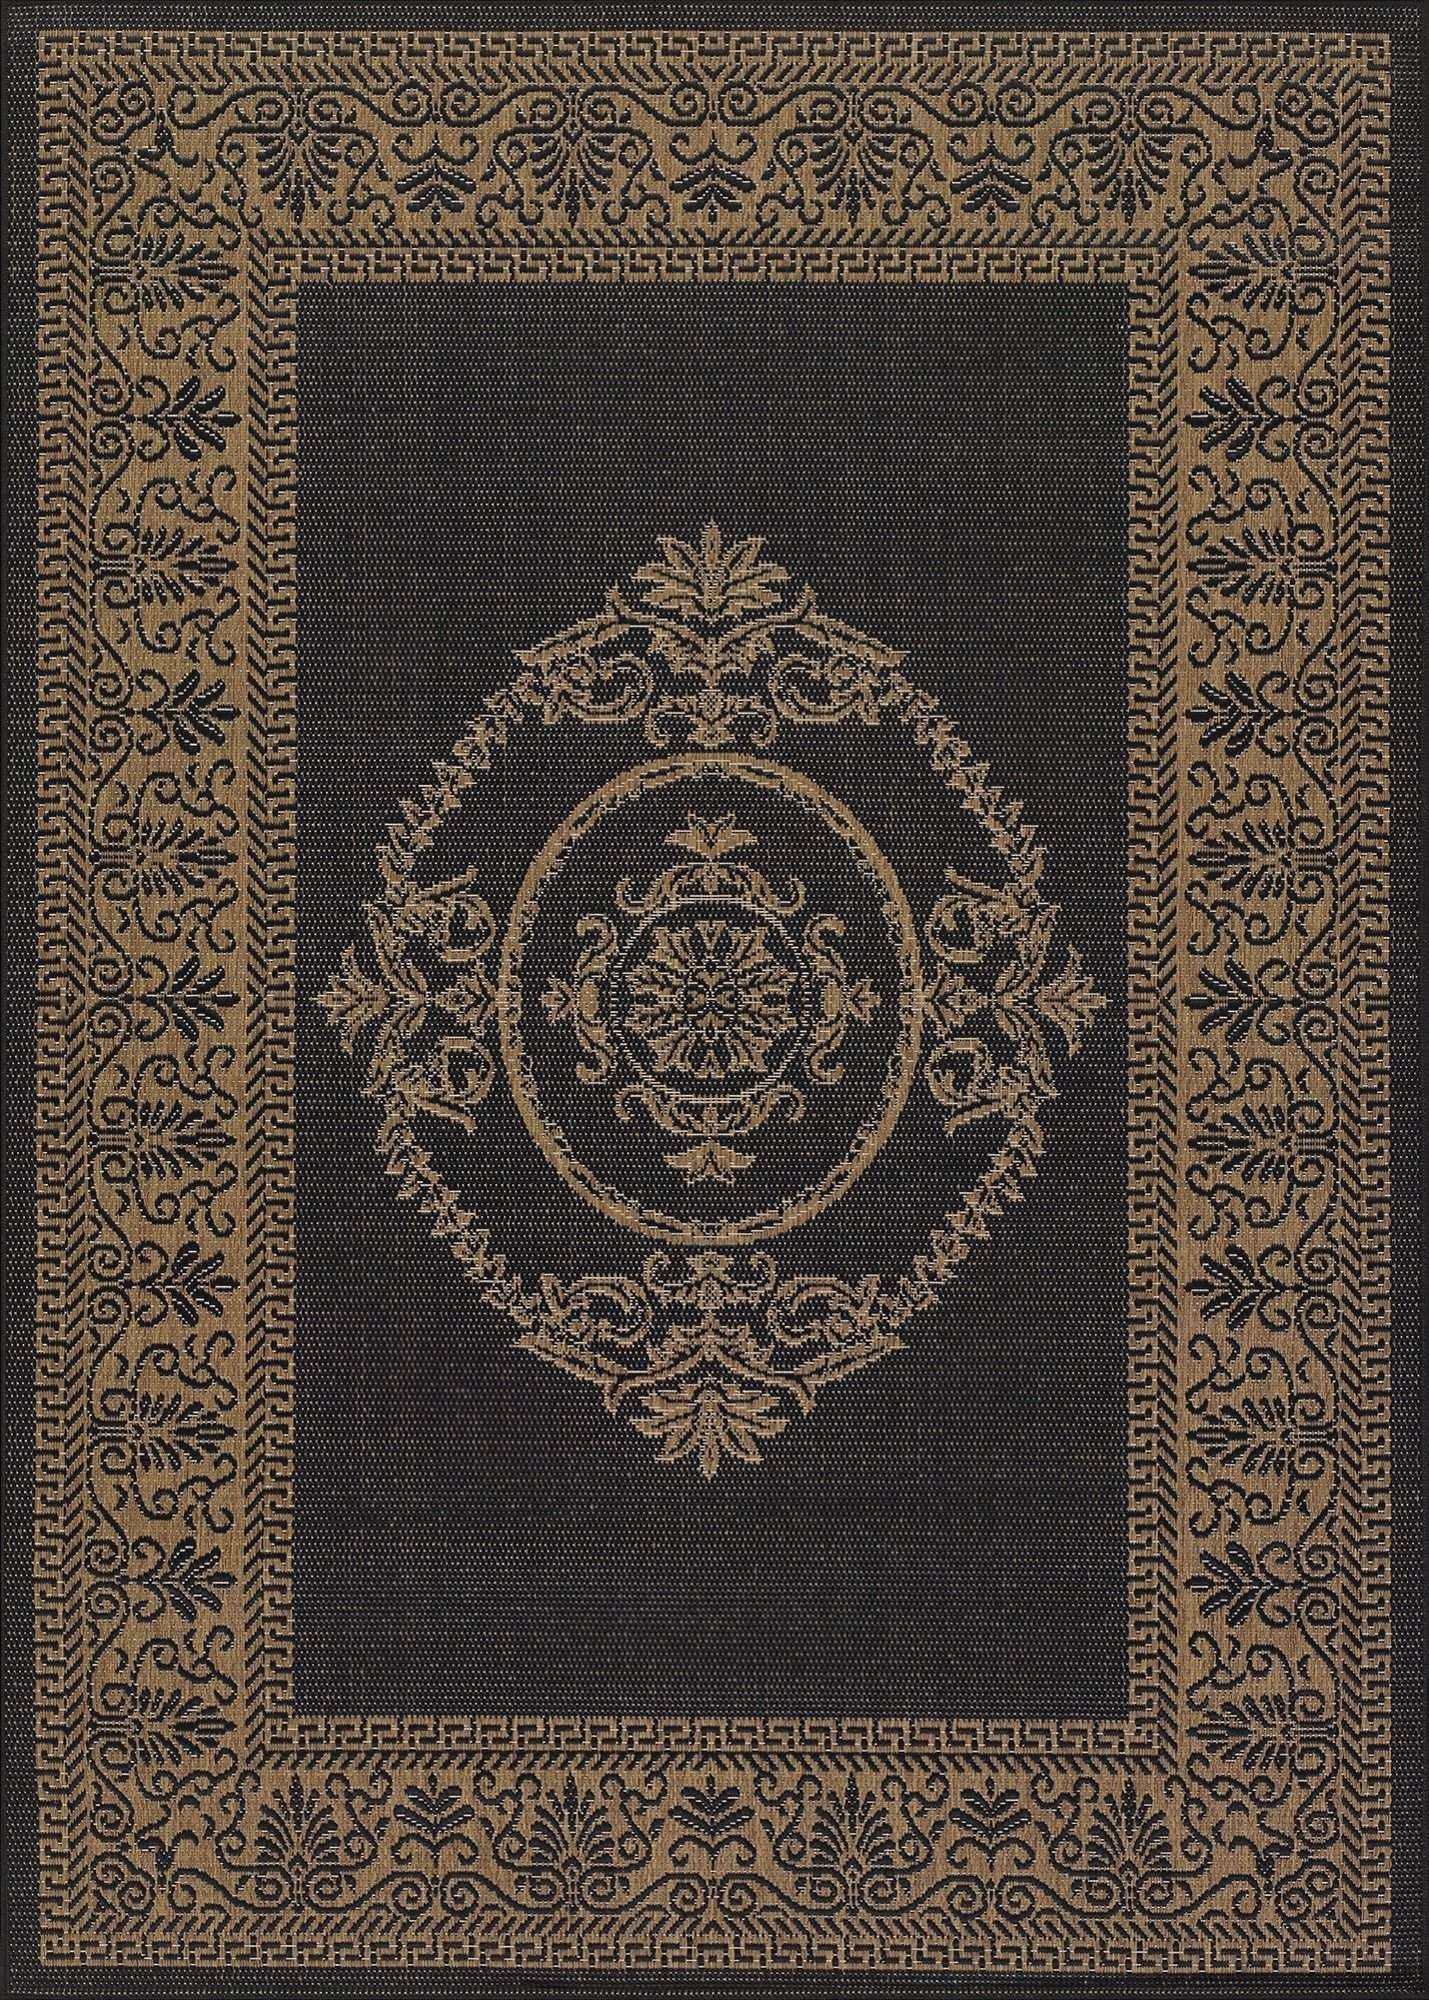 Recife Antique Medallion Outdoor Area Rugs Make Living Easy An Seating Will Instantly Become Cozier And More Welcoming When Adding